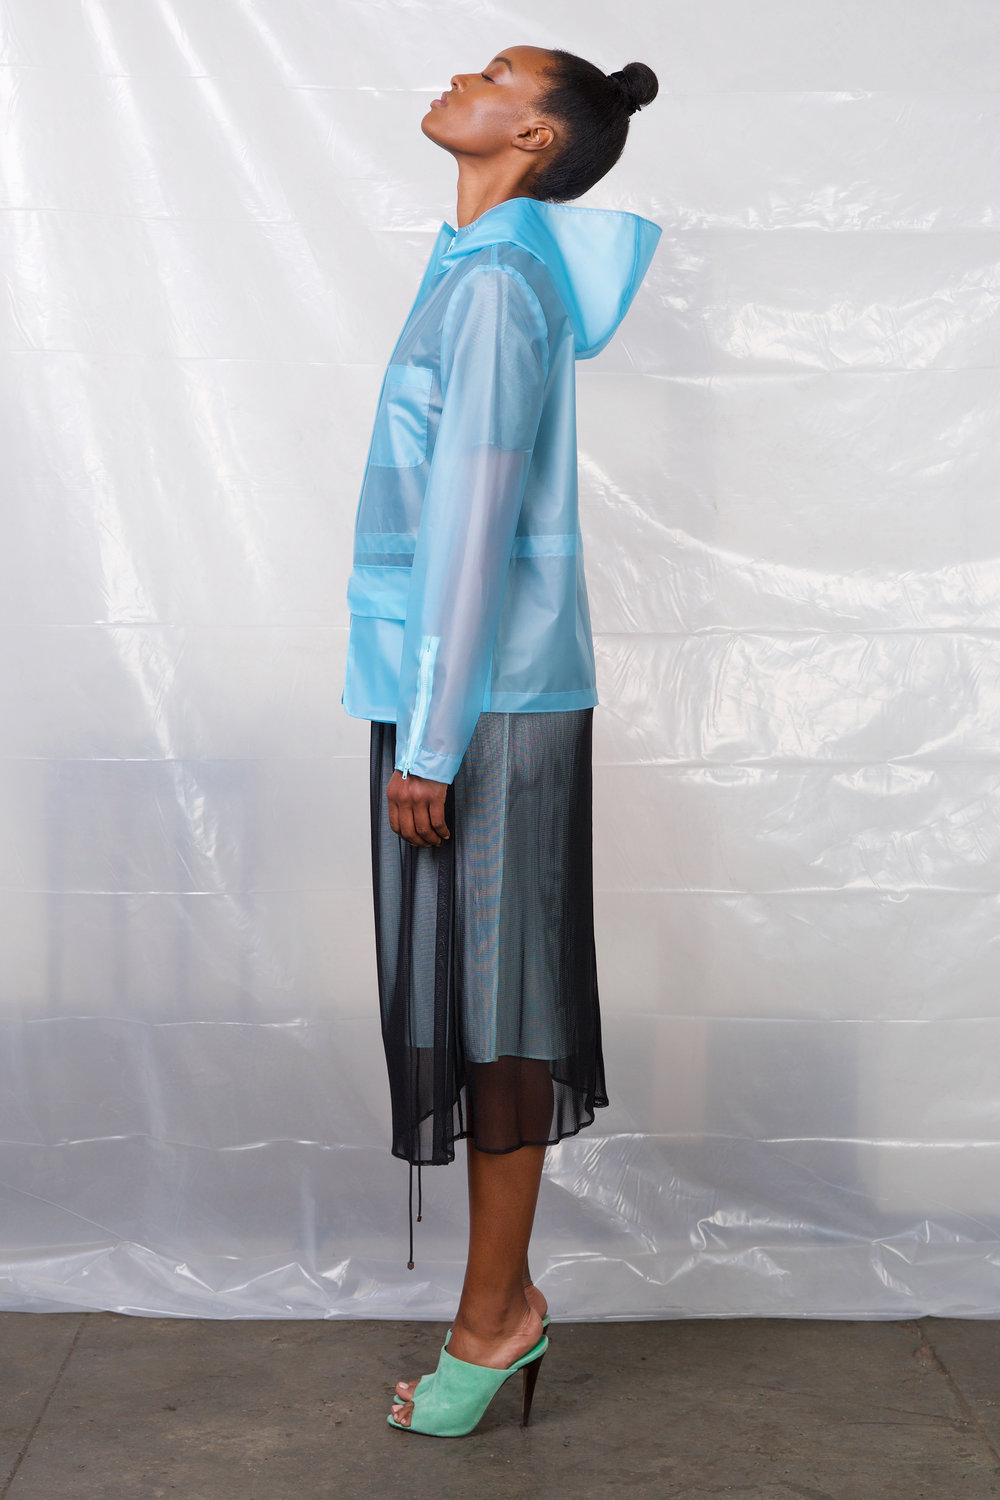 mint dress and raincoat flat.jpg